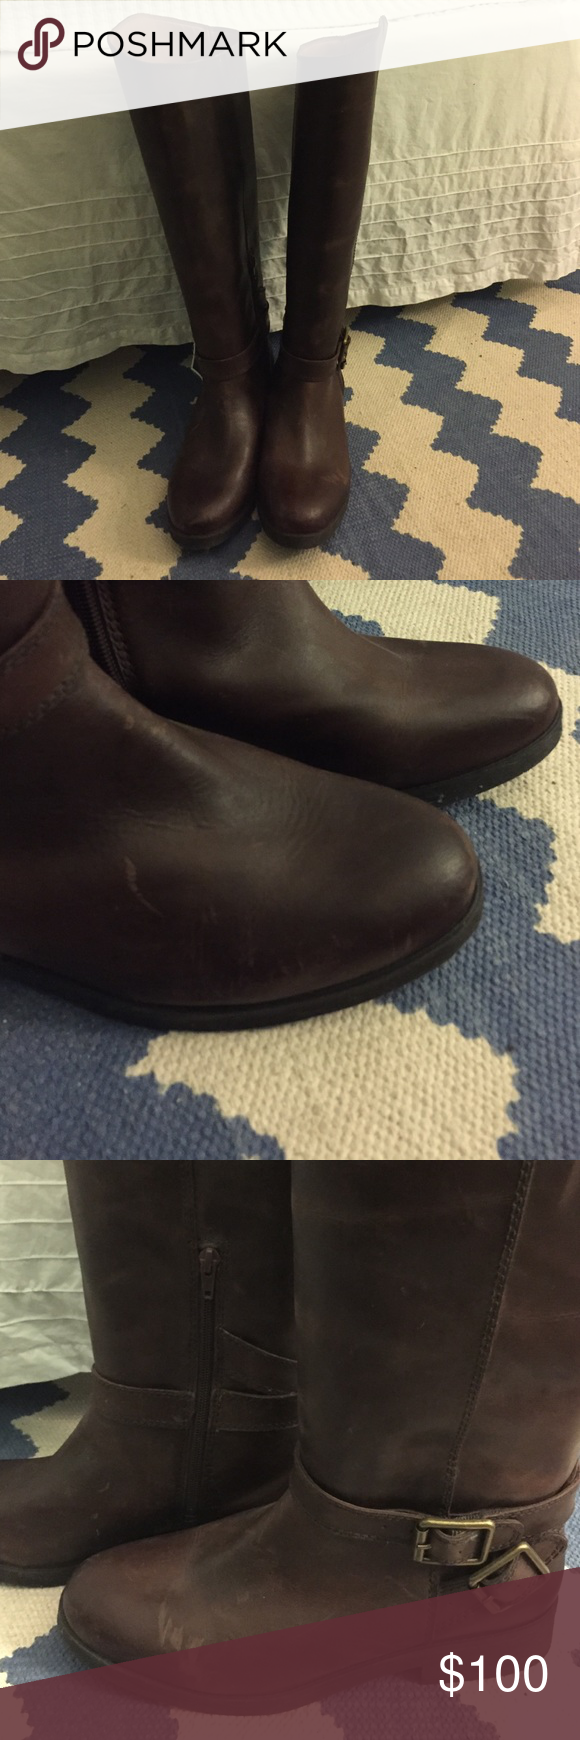 NWOT Lucky Brand Riding Boots Really cute brown leather riding boots. Inside ankle zip to make them easier to put on. I've had these a few years and there are some marks on them from being in my closet. They're really great boots, but I have a bit of a boot obsession so these unfortunately have never been worn. Lucky Brand Shoes